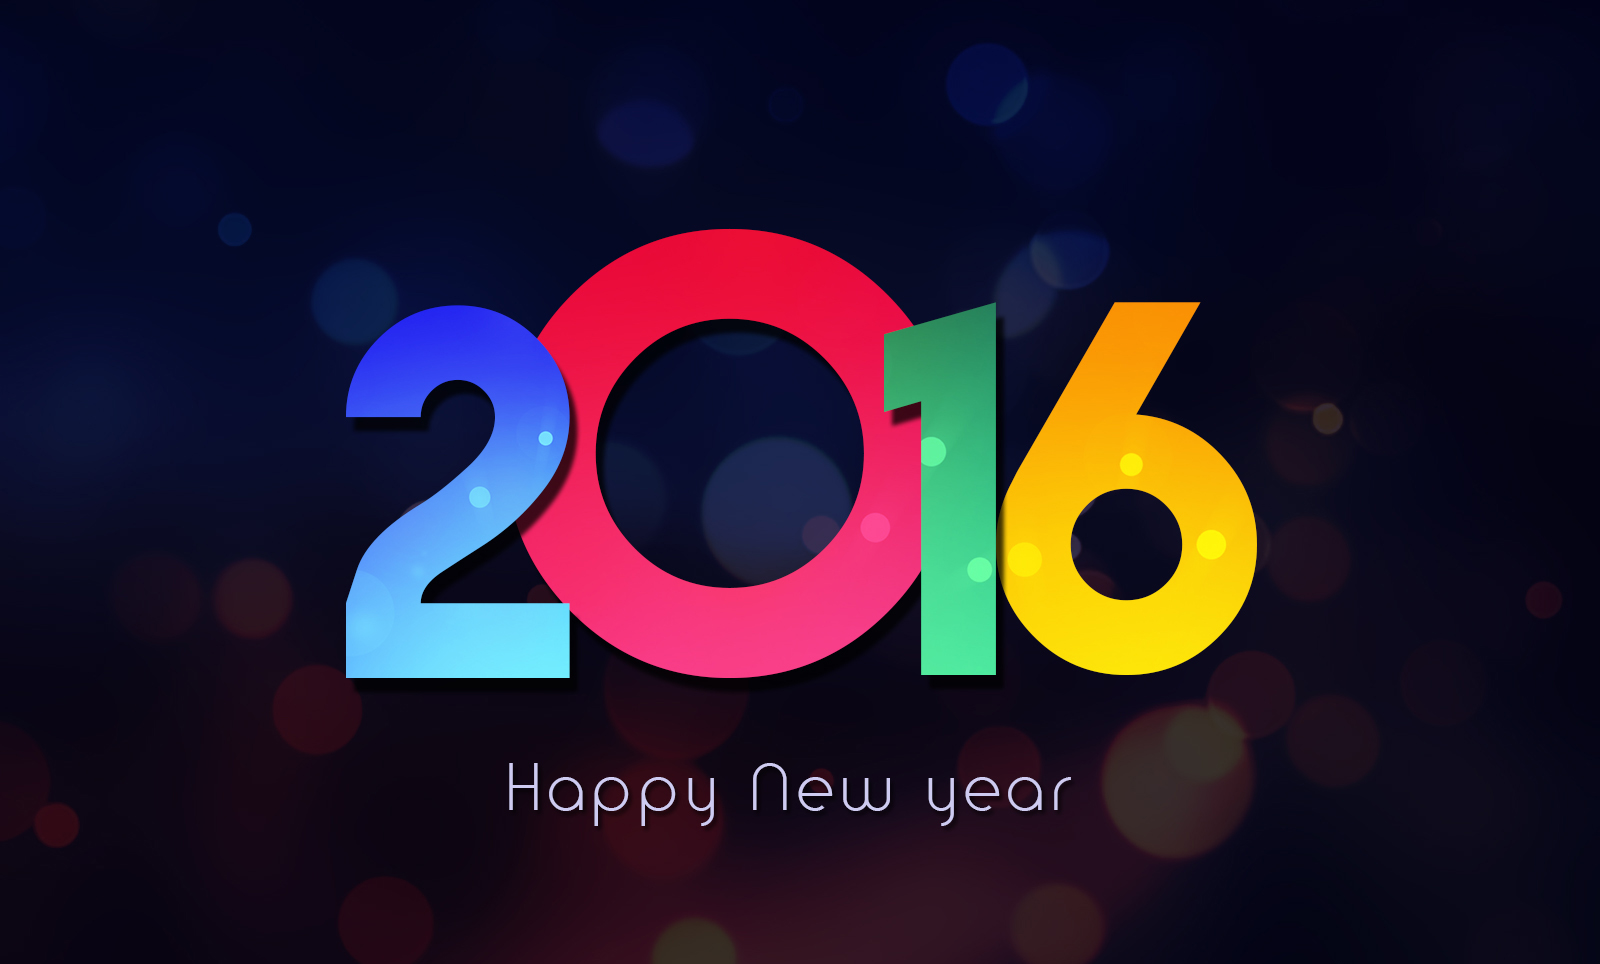 3d New Year 2016 Wallpaper Black Colorful Hd Greeting Happy New